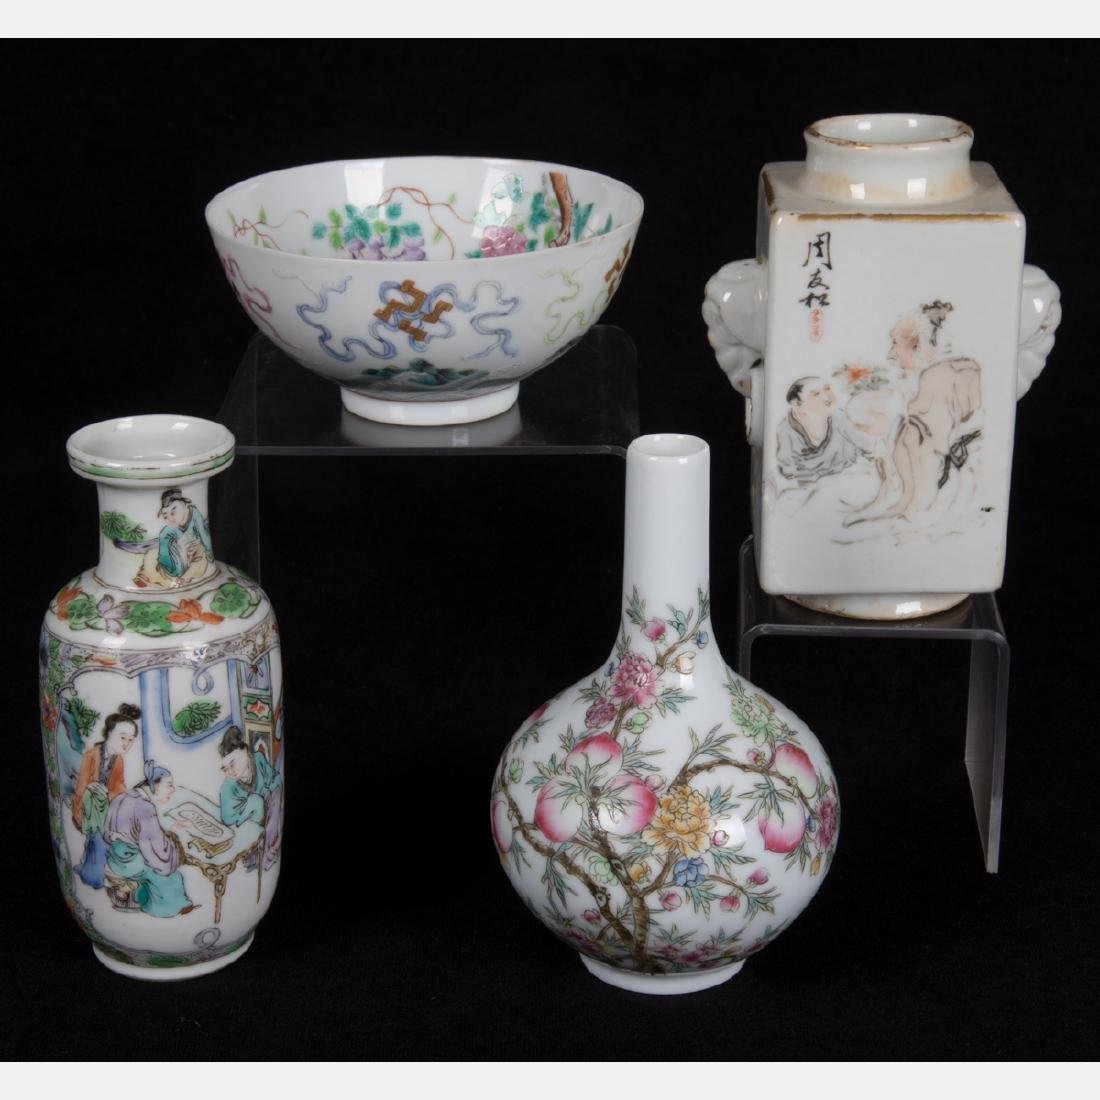 A Group of Three Diminutive Chinese Porcelain Vases,